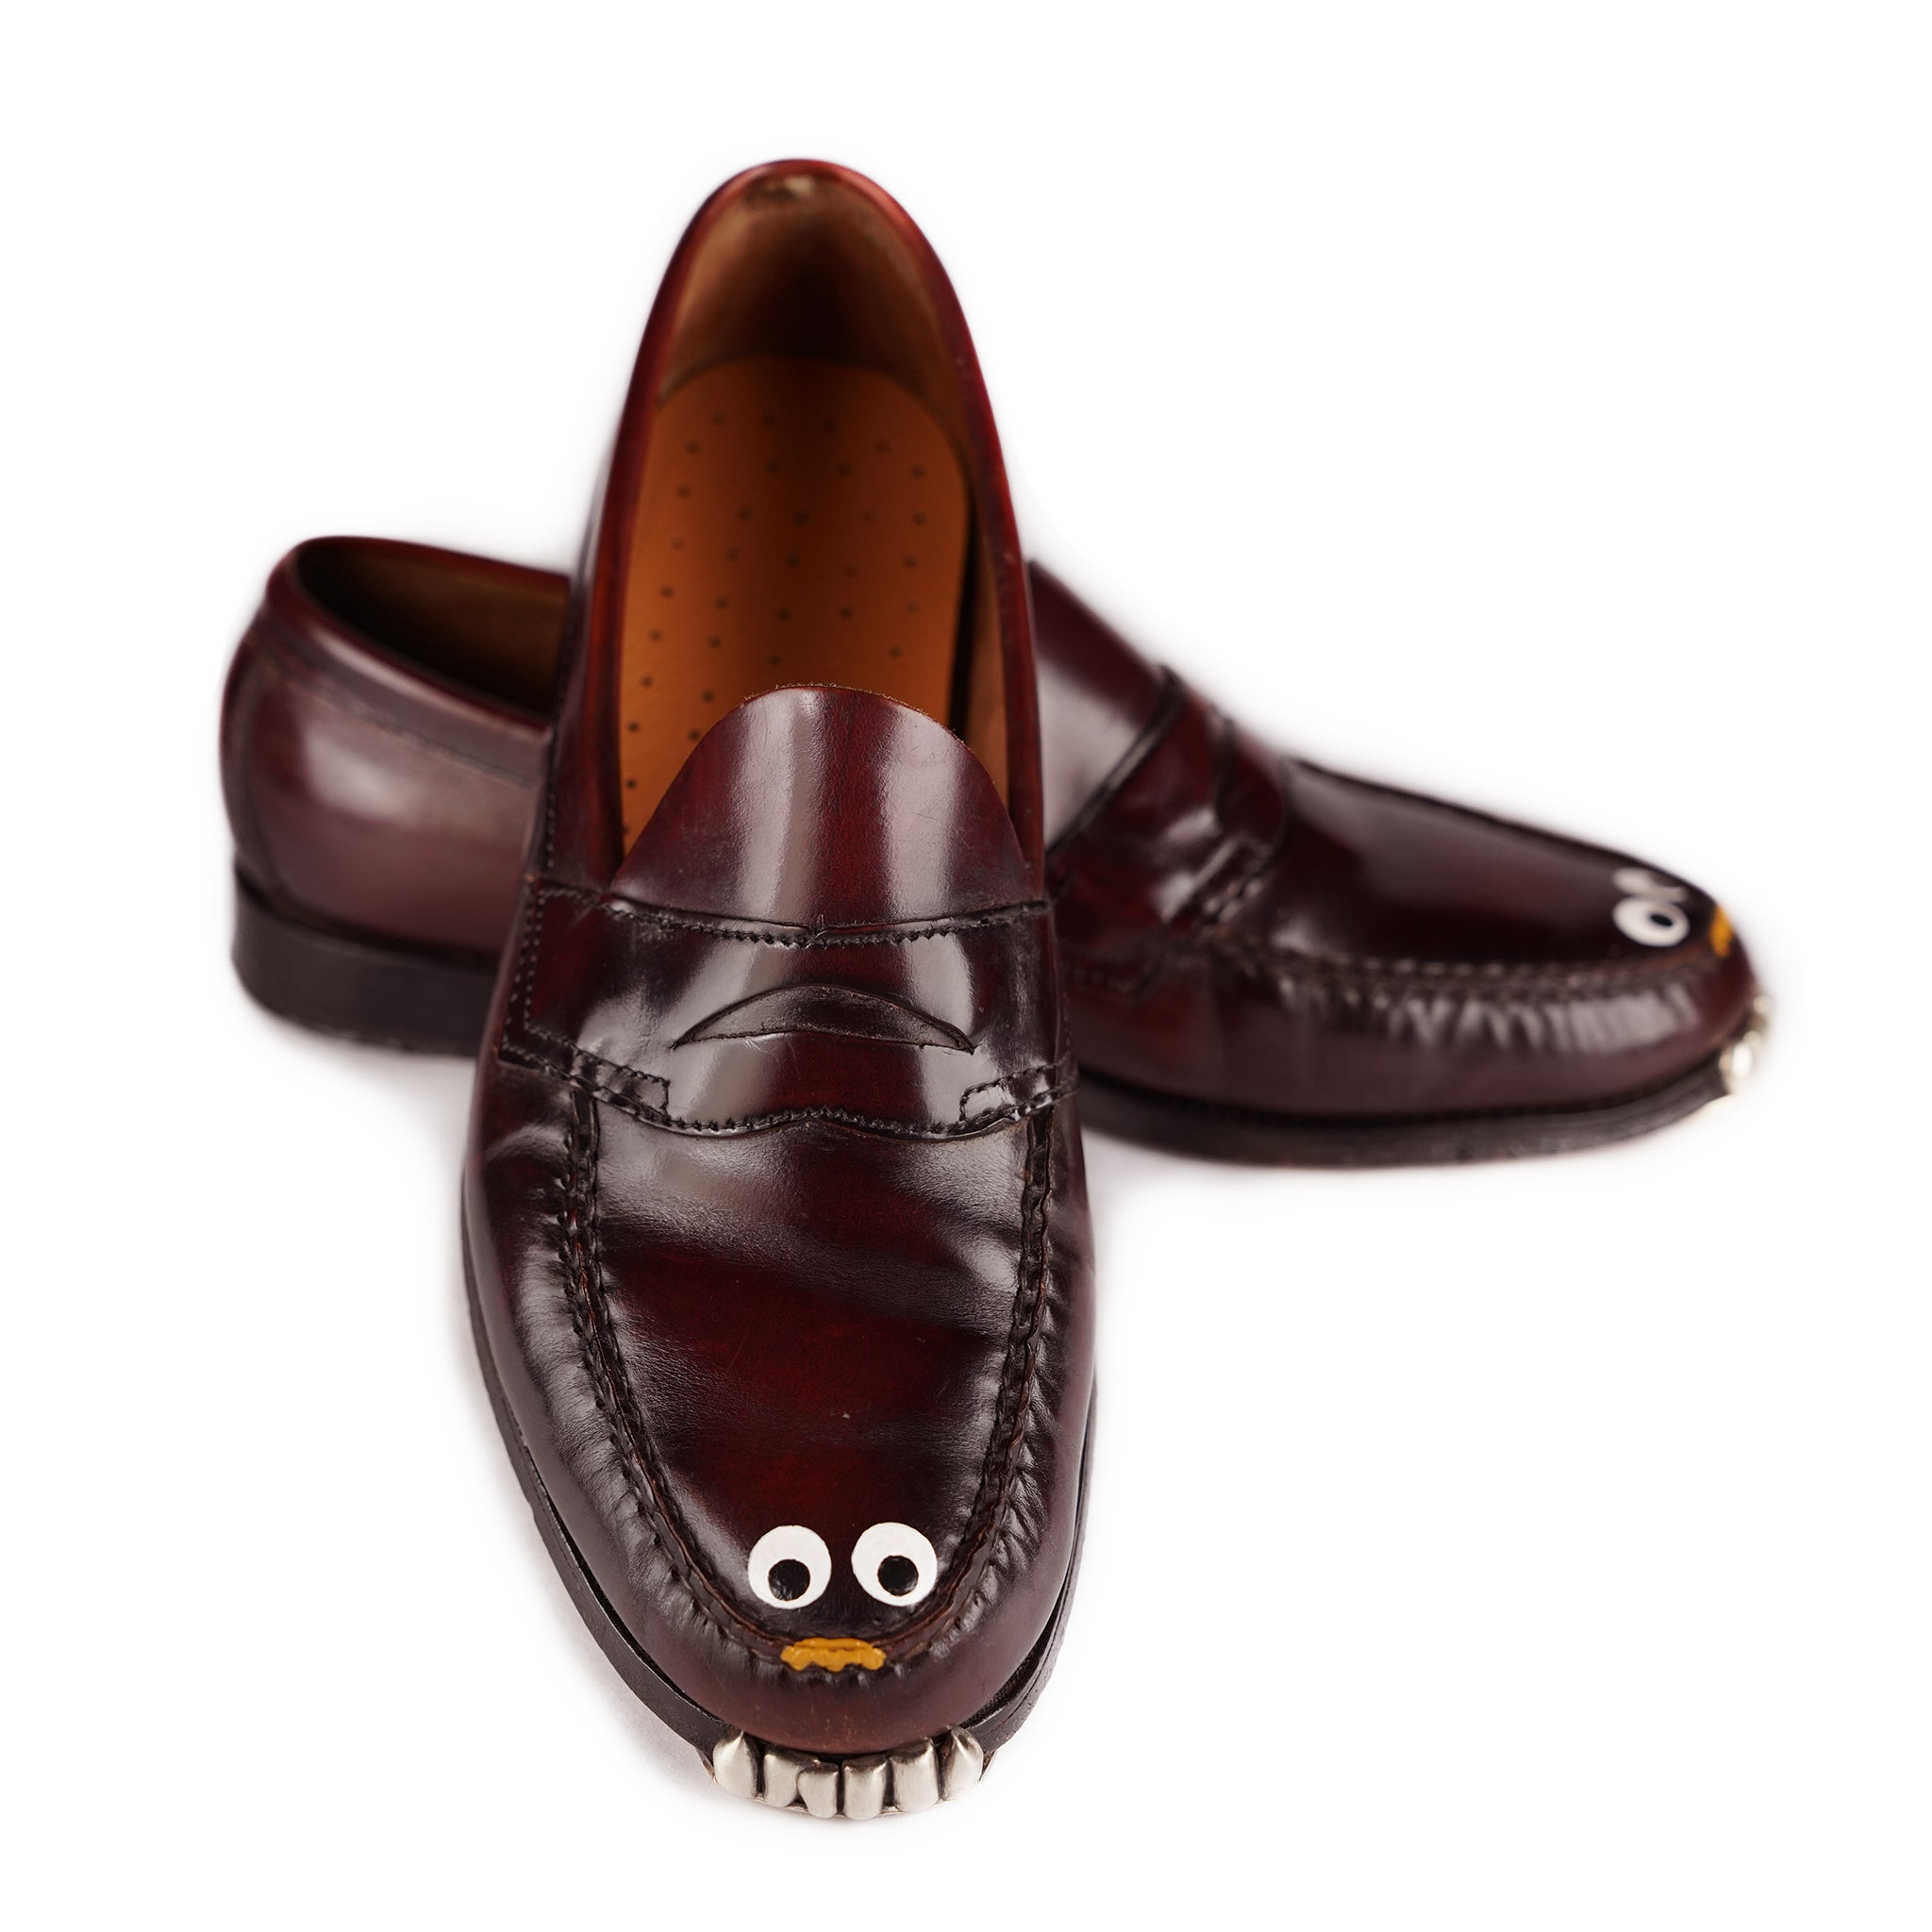 Oxblood Googly Eyed Puppy Loafer